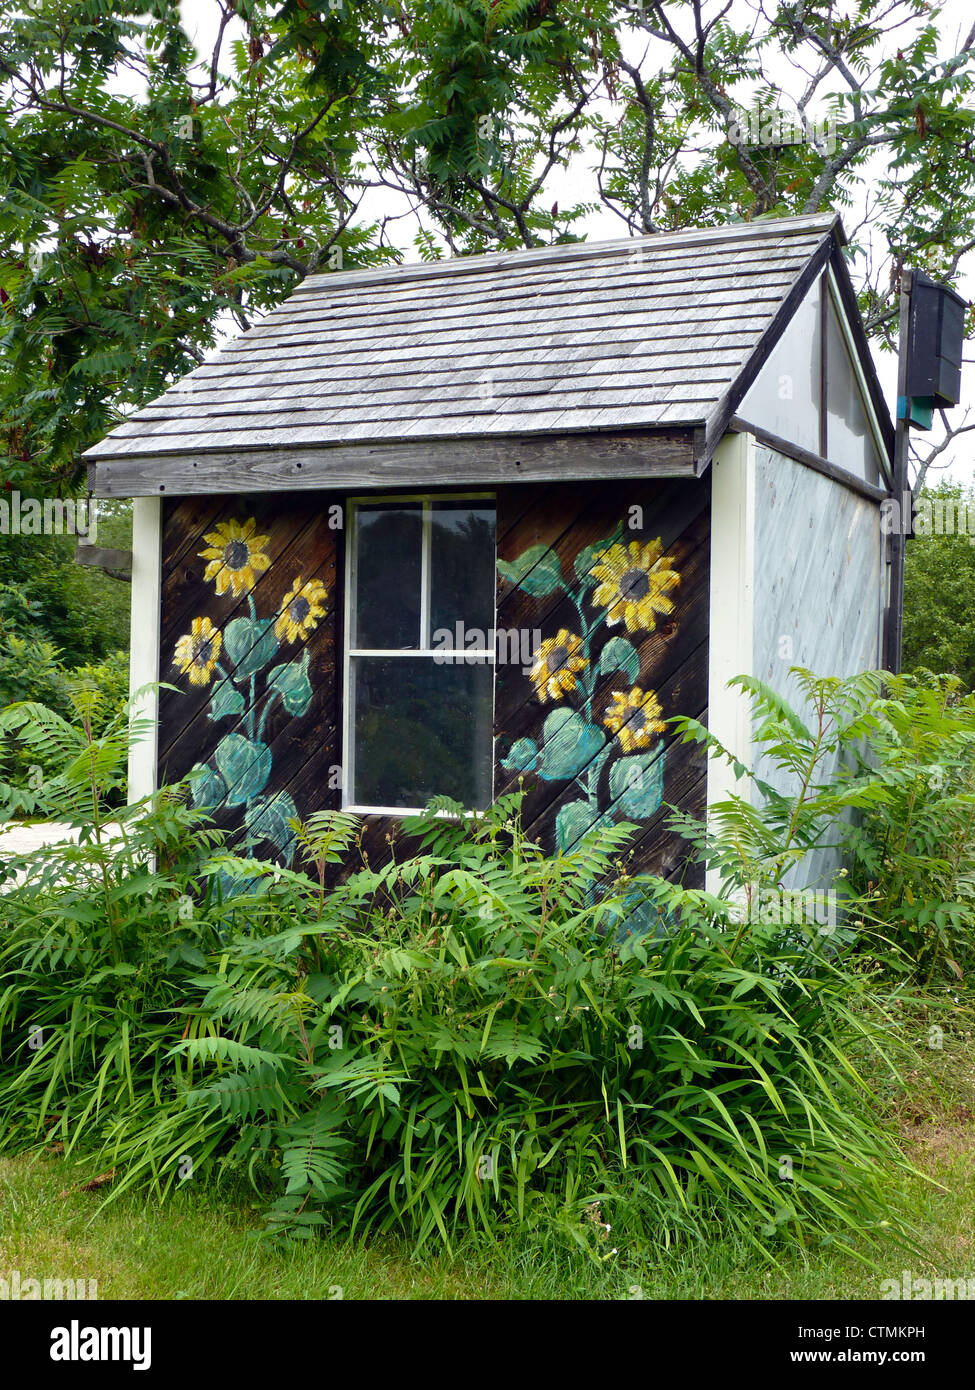 Painted garden shed with sunflowers in community garden, Yarmouth Maine, USA - Stock Image